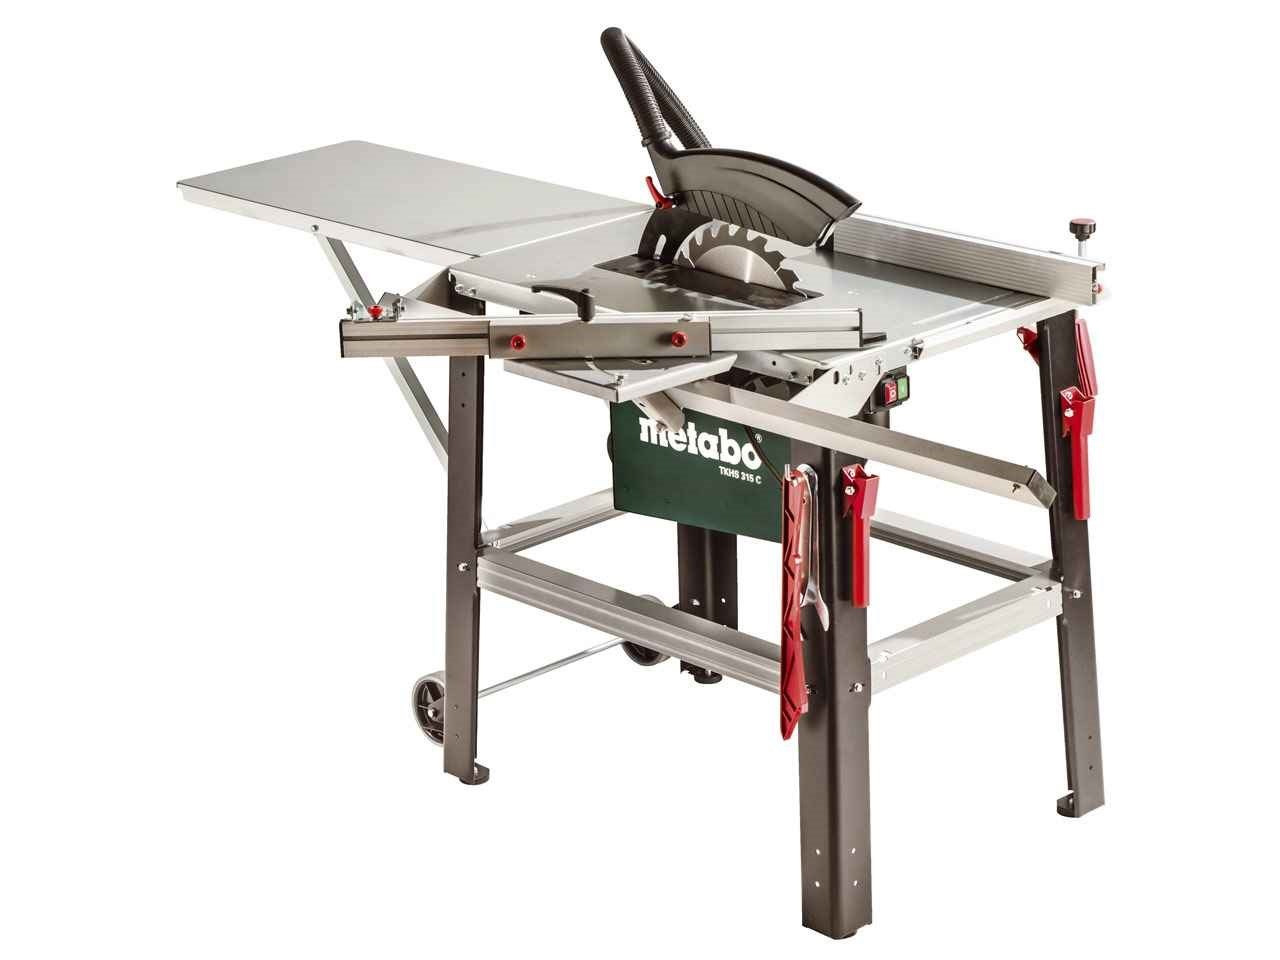 Metabo Tkhs 315 C 230v Site Table Saw With Sliding Carriage